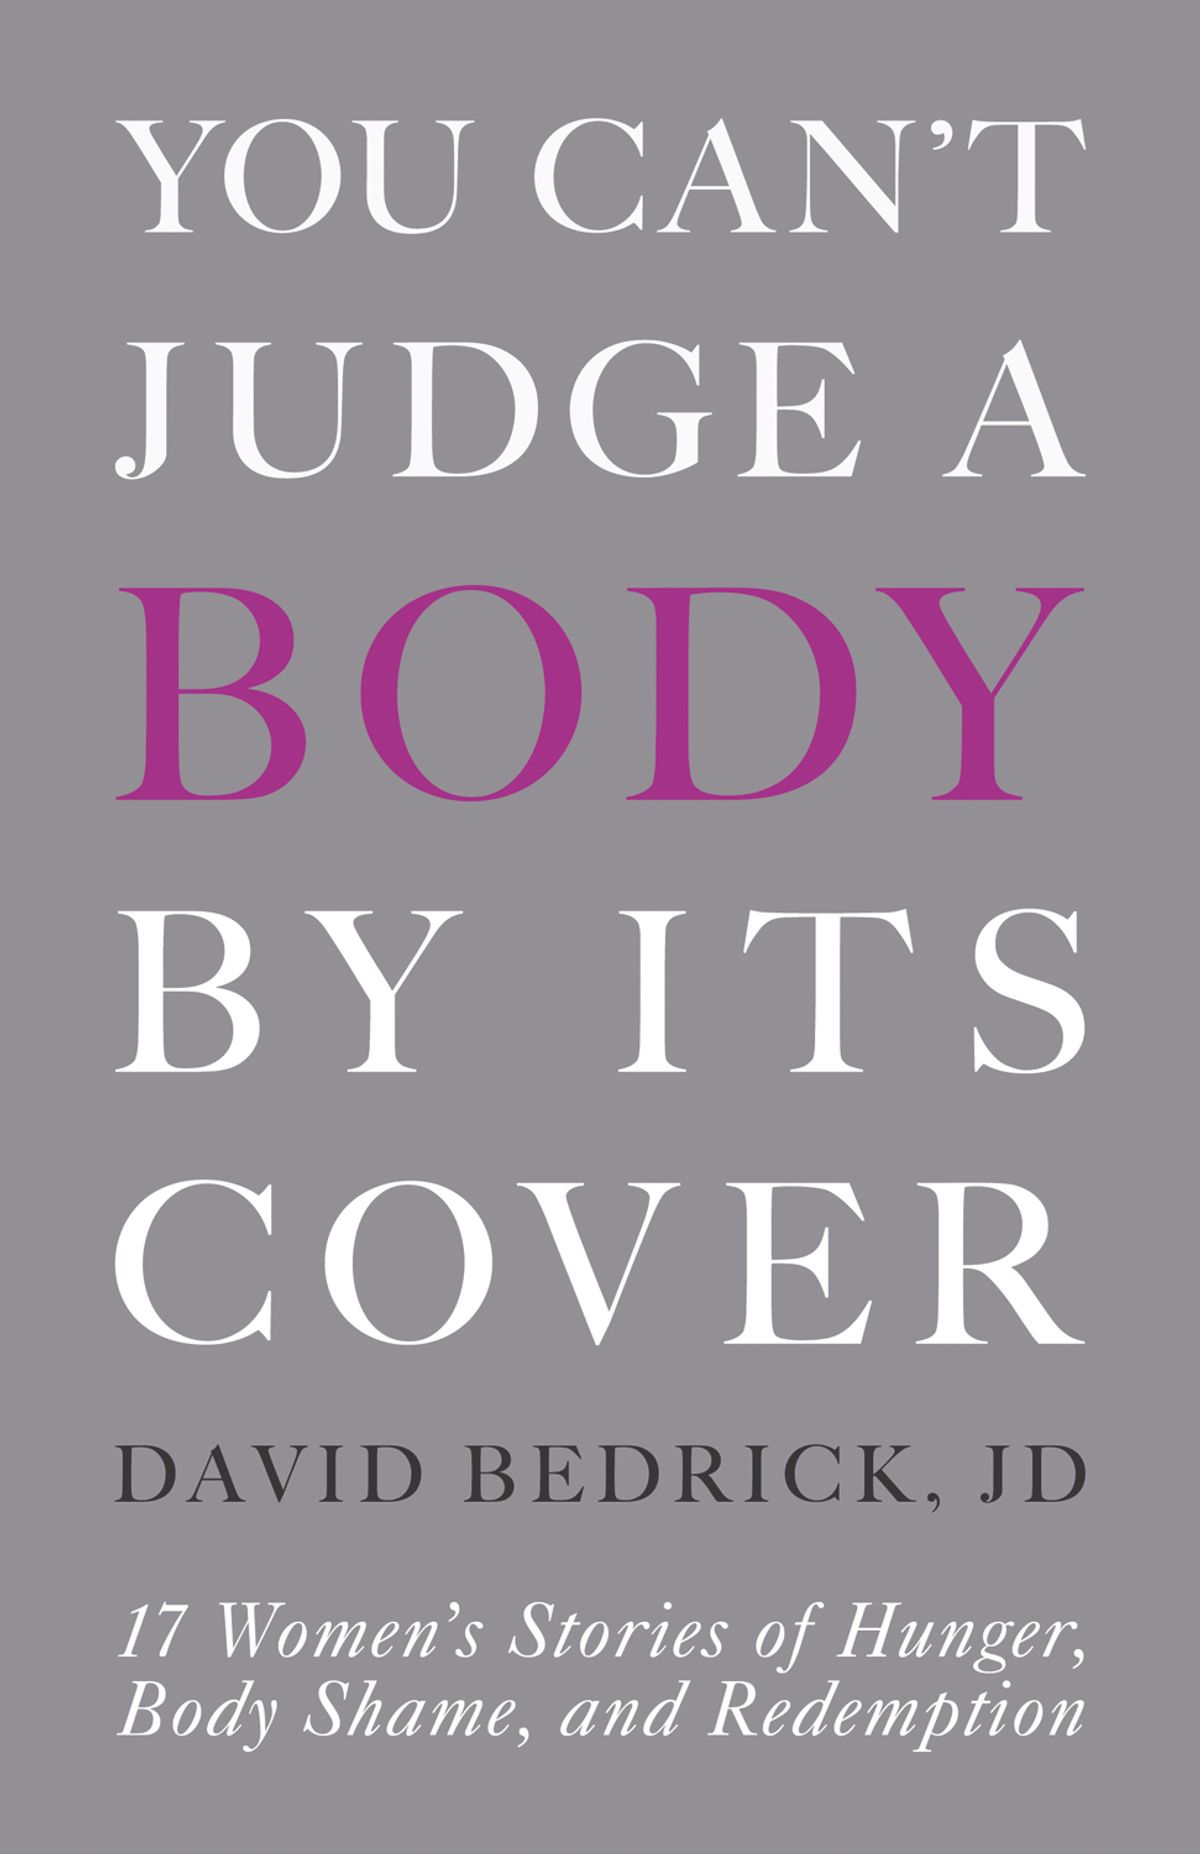 You Can't Judge a Body by Its Cover: 17 Women's Stories of Hunger, Body Shame, and Redemption